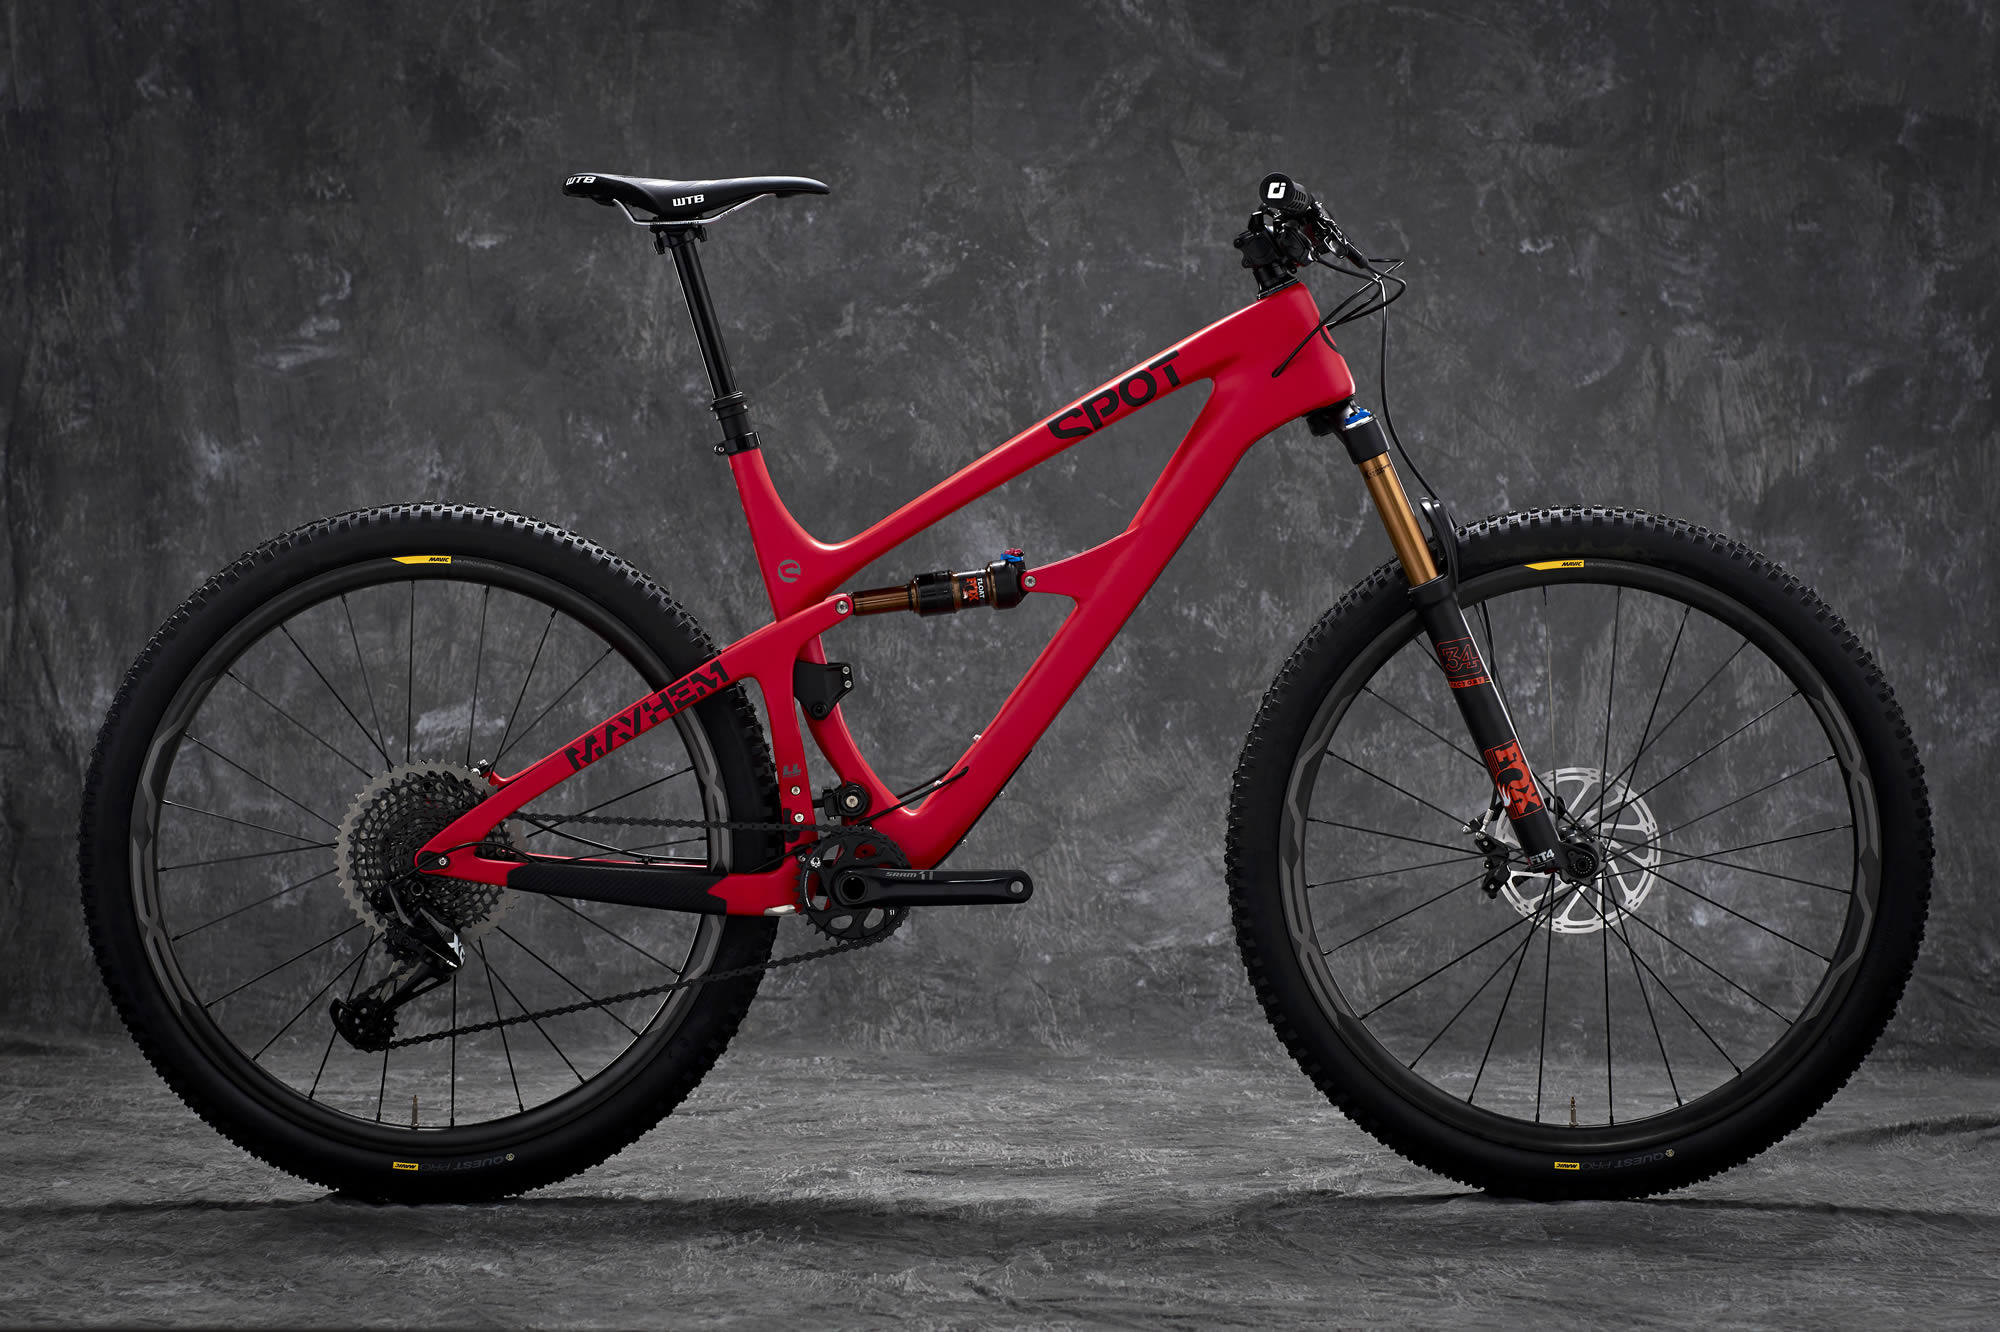 Spot Mayhem 29er Prototype Spotted At Outerbike